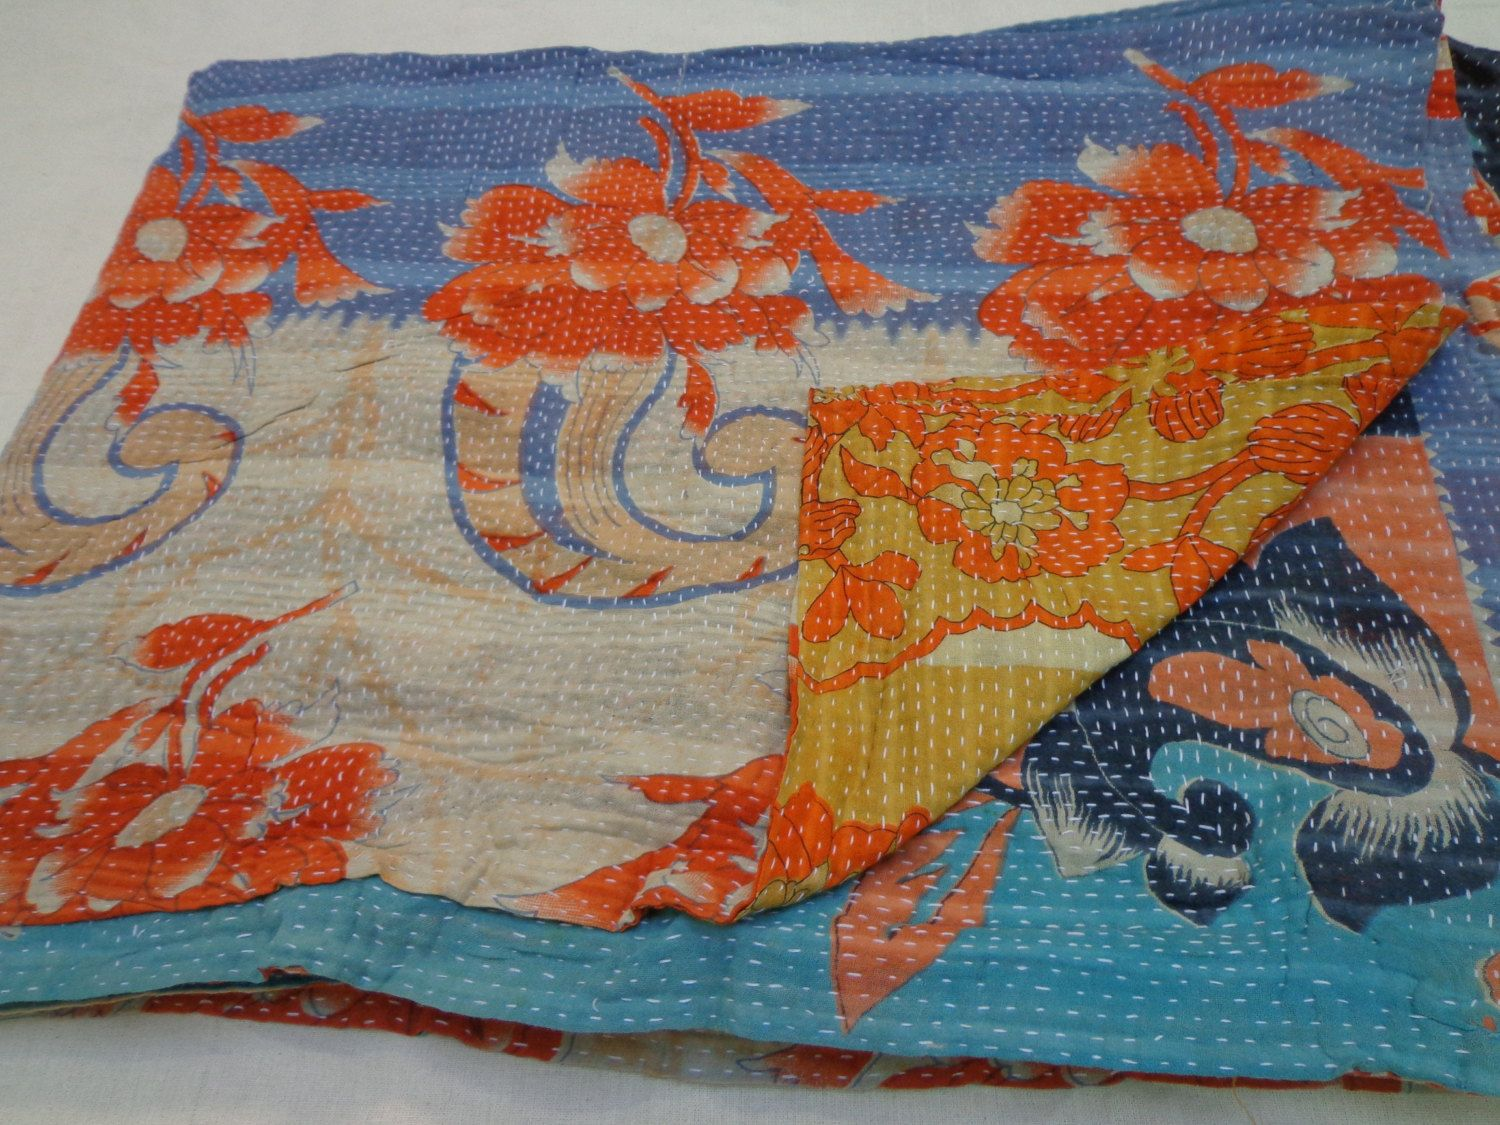 Authentic Kantha Quilt, Flower Print Quilt, Reversible Kantha Quilt, Tapestery king Bedding, Quilted BedSpread, Throw, Ralli, Gudari  A723. $59.00, via Etsy.